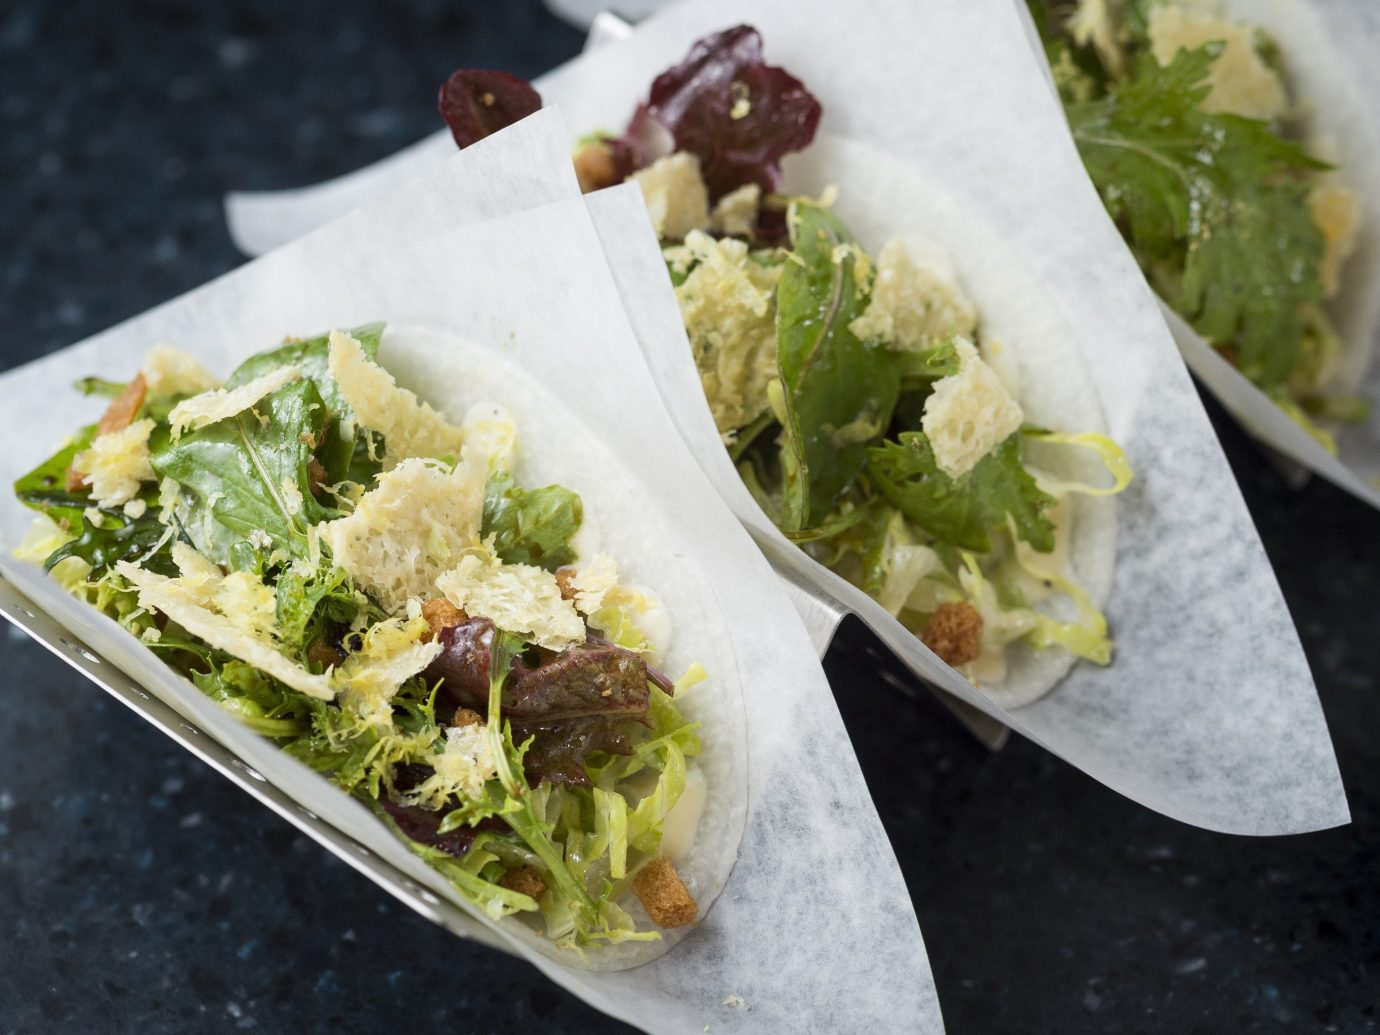 Trip Ideas food dish paper cuisine container taco taquito tray meal salad street food asian food caesar salad produce plastic